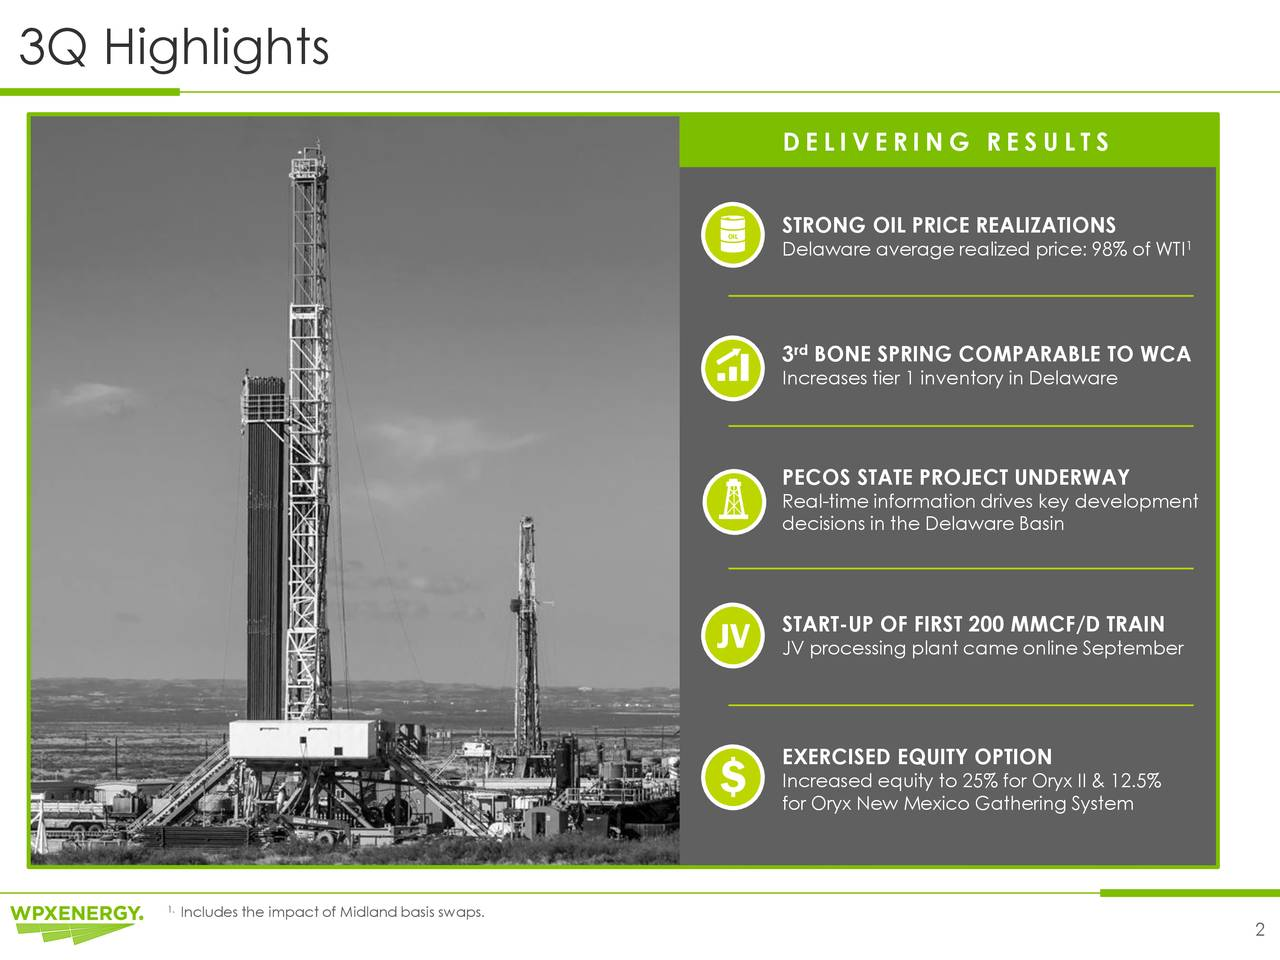 D E L I V E R I N G R E S U L T S OIL STRONG OIL PRICE REALIZATIONS Delaware average realized price: 98% of WTI 3 BONE SPRING COMPARABLE TO WCA Increases tier 1 inventory in Delaware PECOS STATE PROJECT UNDERWAY Real-time information drives key development decisions in the Delaware Basin START-UP OF FIRST 200 MMCF/D TRAIN JV JV processing plant came online September EXERCISED EQUITY OPTION $ Increased equity to 25% for Oryx II & 12.5% for Oryx New Mexico Gathering System 1Includes the impact of Midland basis swaps. 2